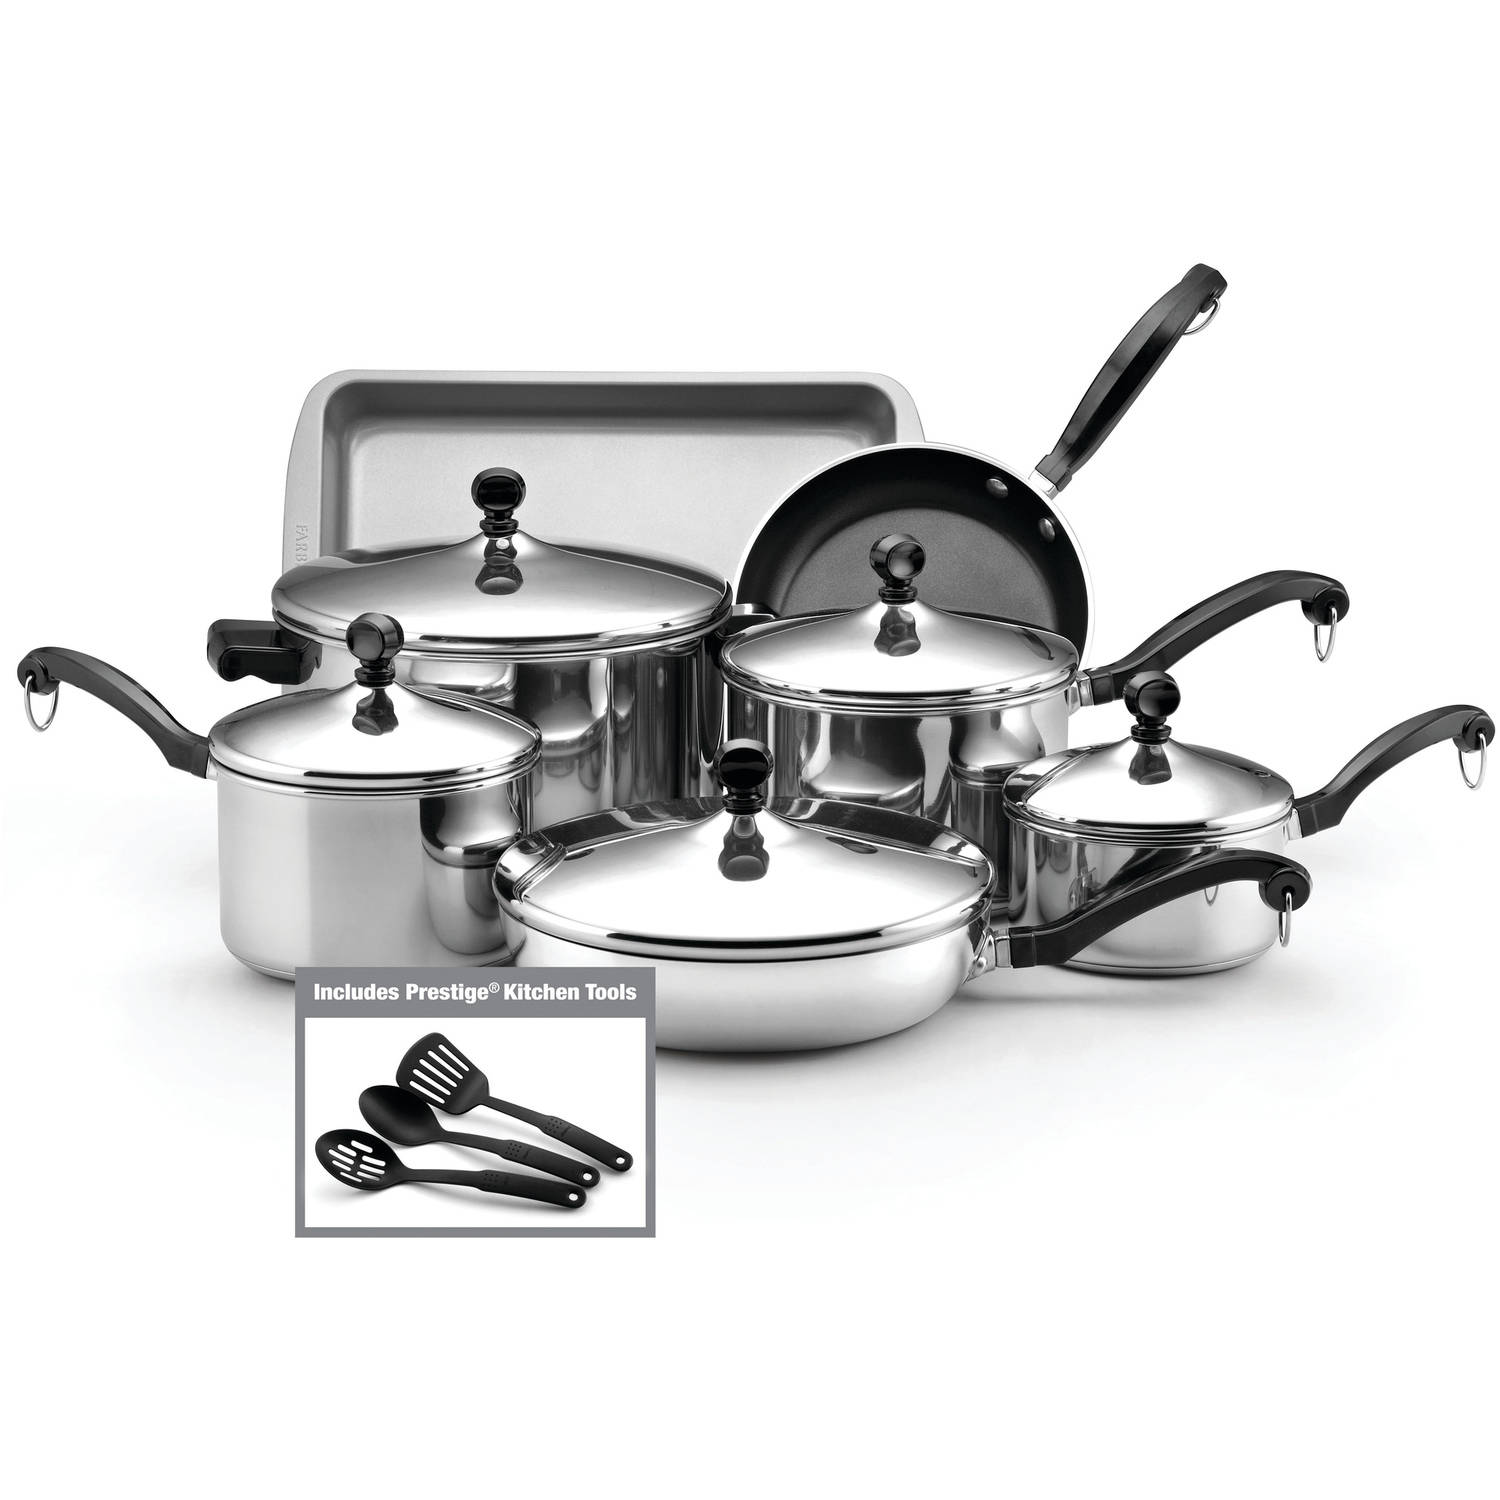 Farberware Classic Series Stainless Steel 15-Piece Cookware Set by Meyer Corporation